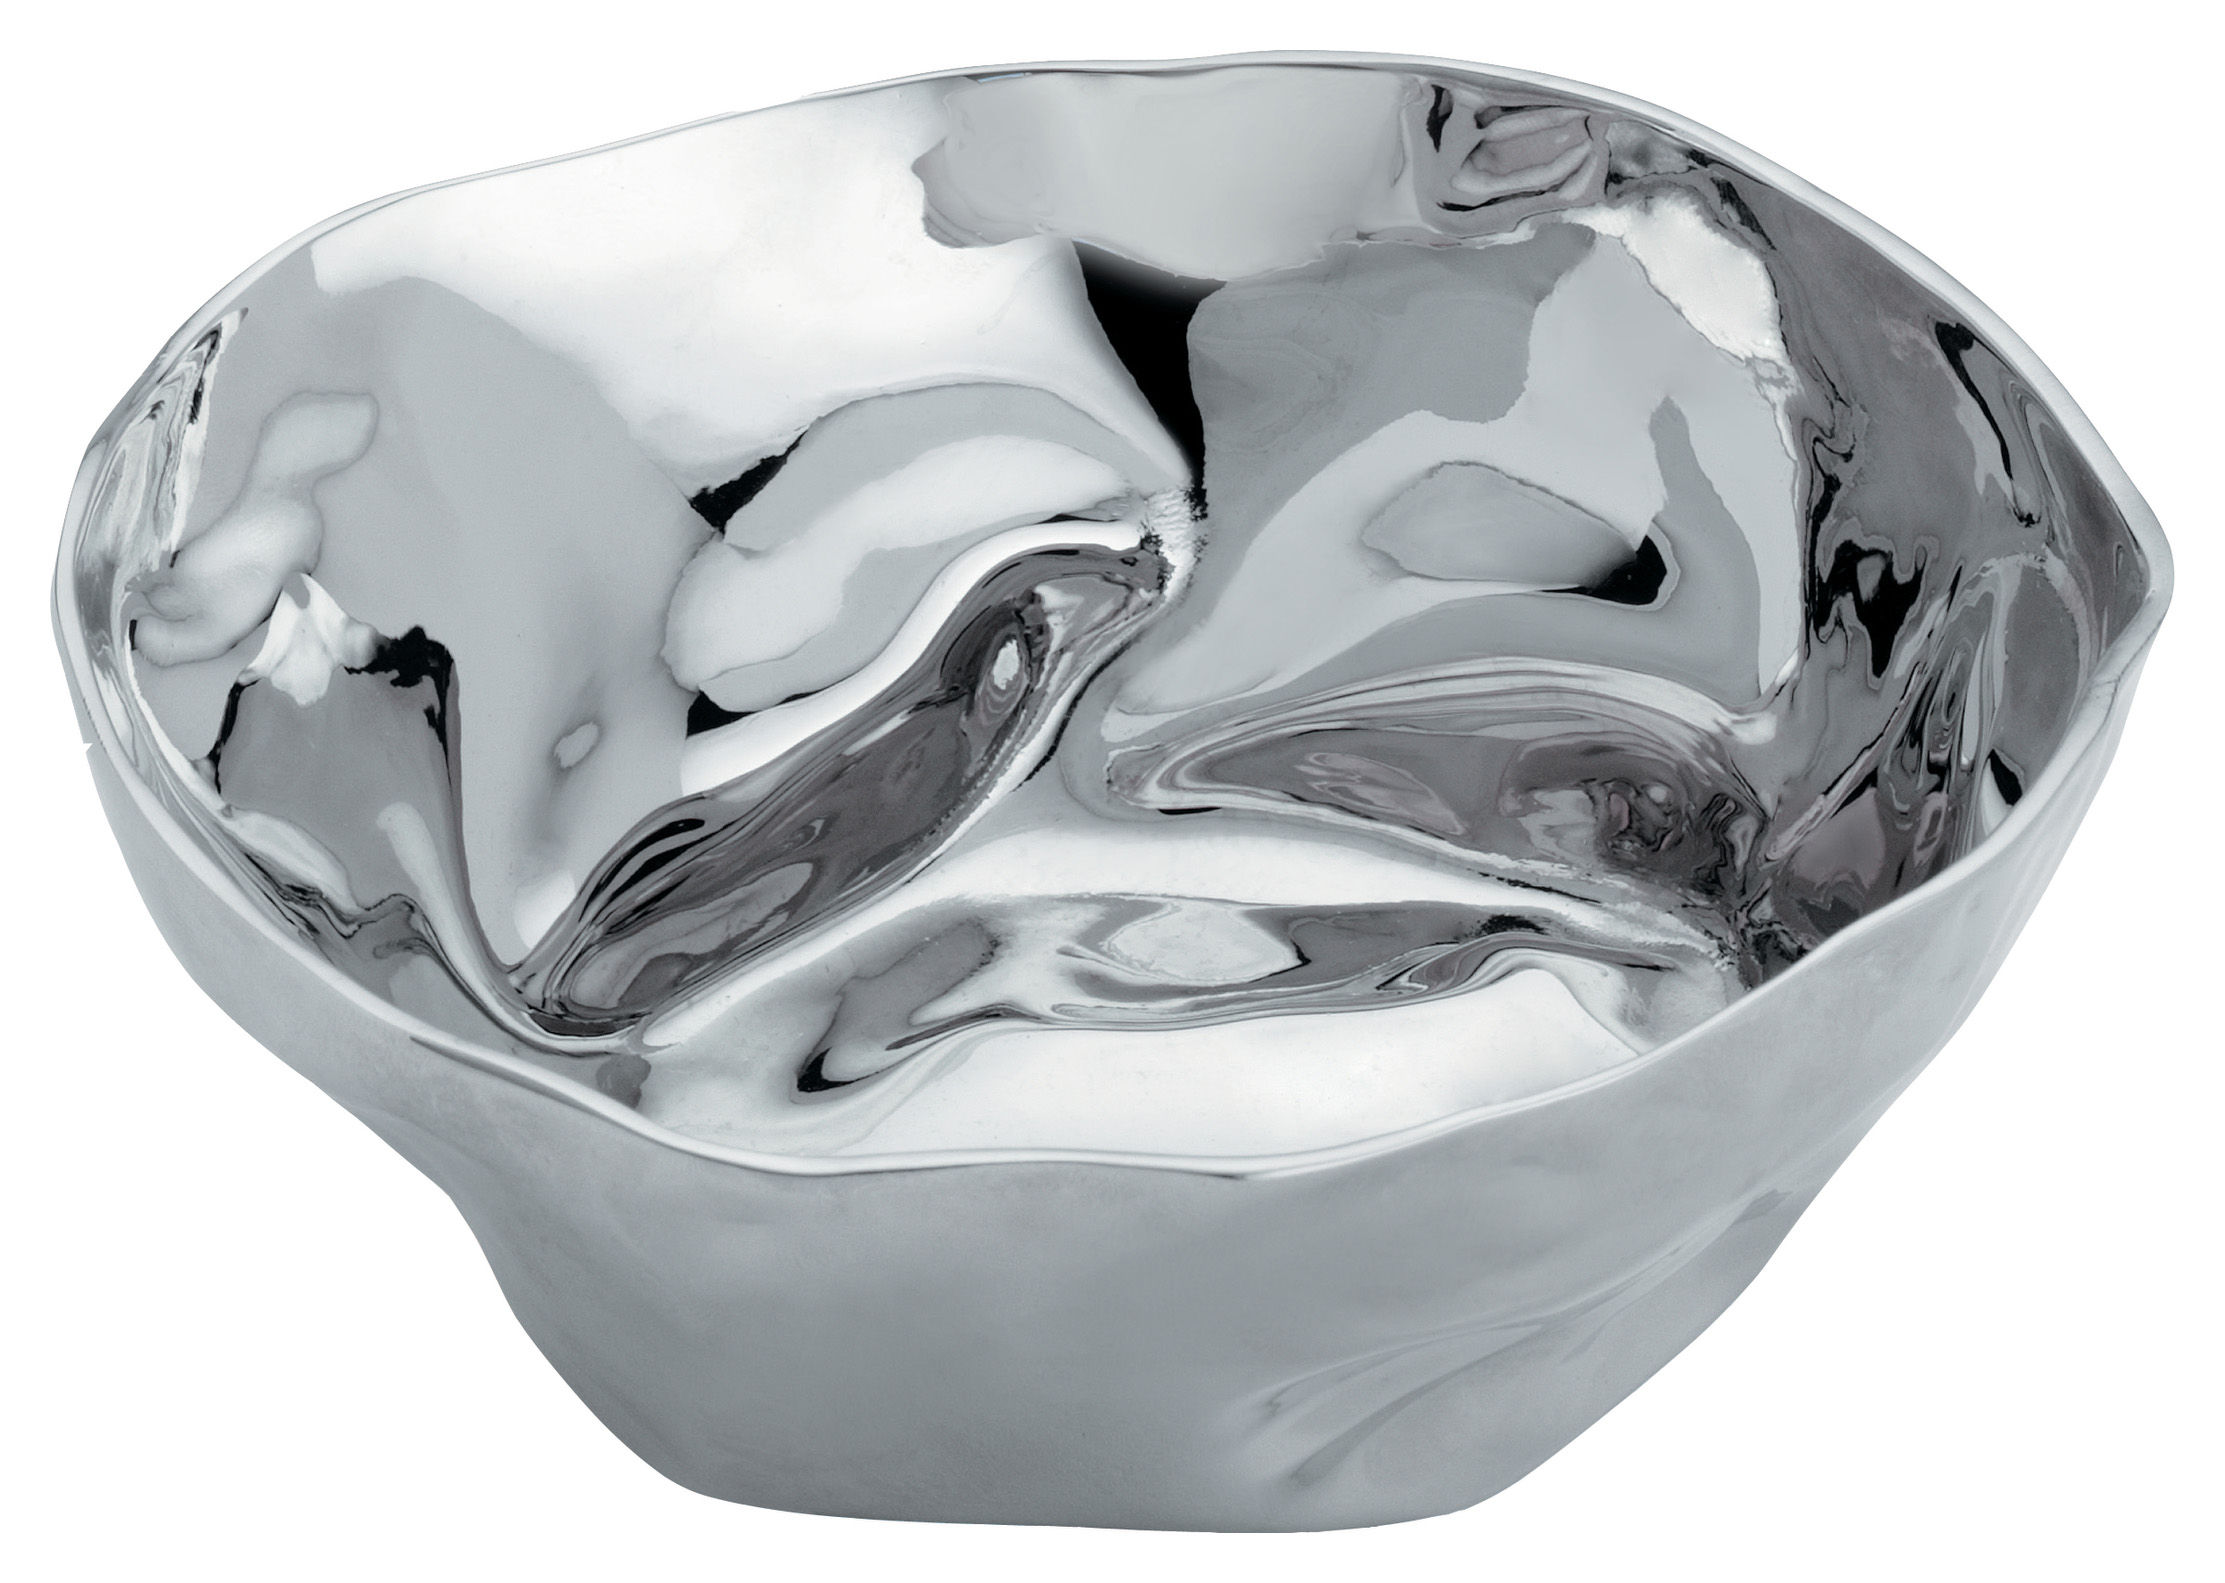 Tableware - Bowls - Francesca Small dish - Set of 2 by Alessi - Polished stainless steel - Polished stainless steel